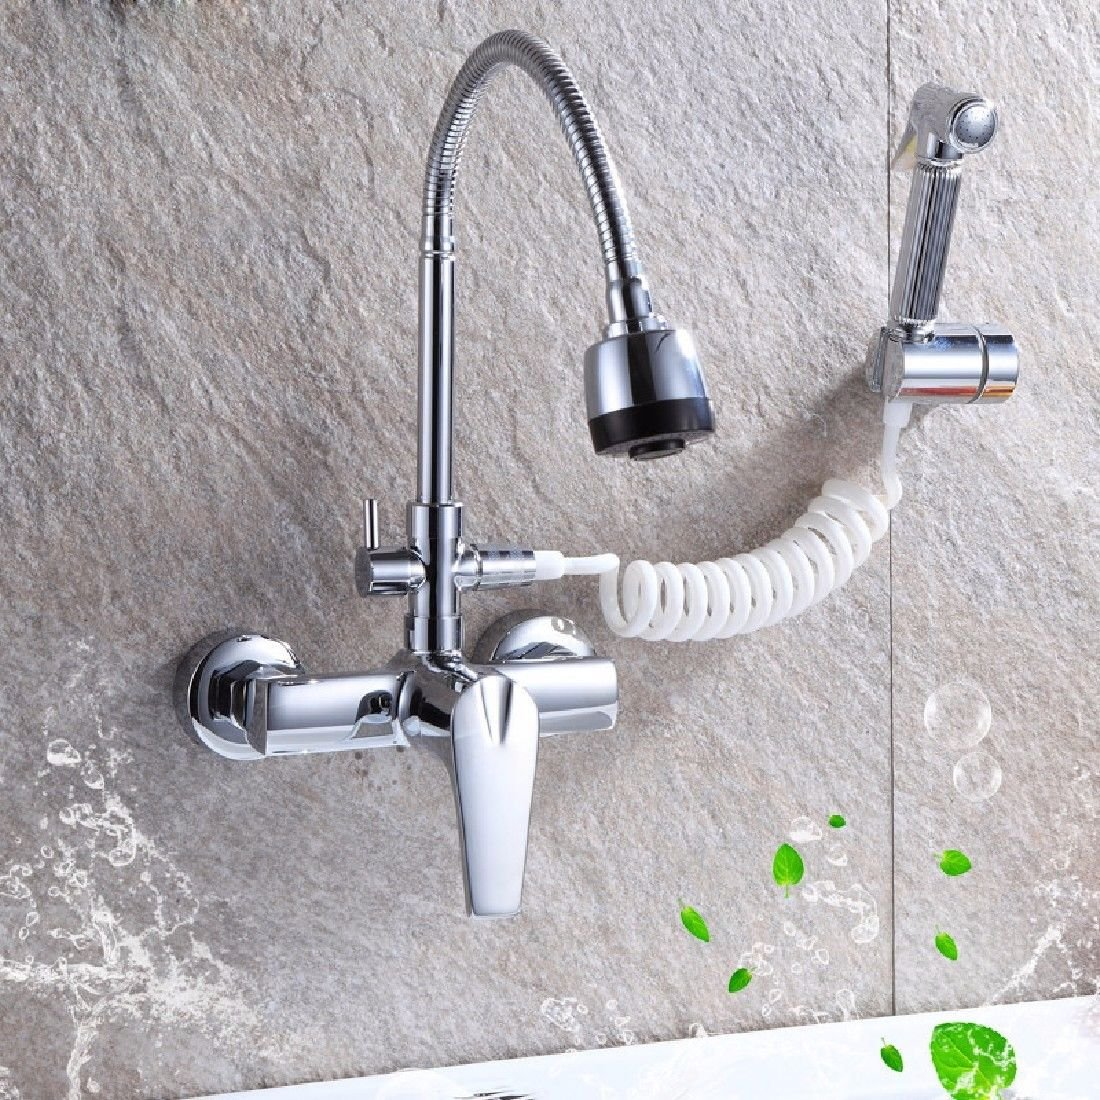 ETERNAL QUALITY Bathroom Sink Basin Tap Brass Mixer Tap Washroom Mixer Faucet The wall-copper cold water kitchen faucet Single Handle Wall mounted sink laundry pool can t